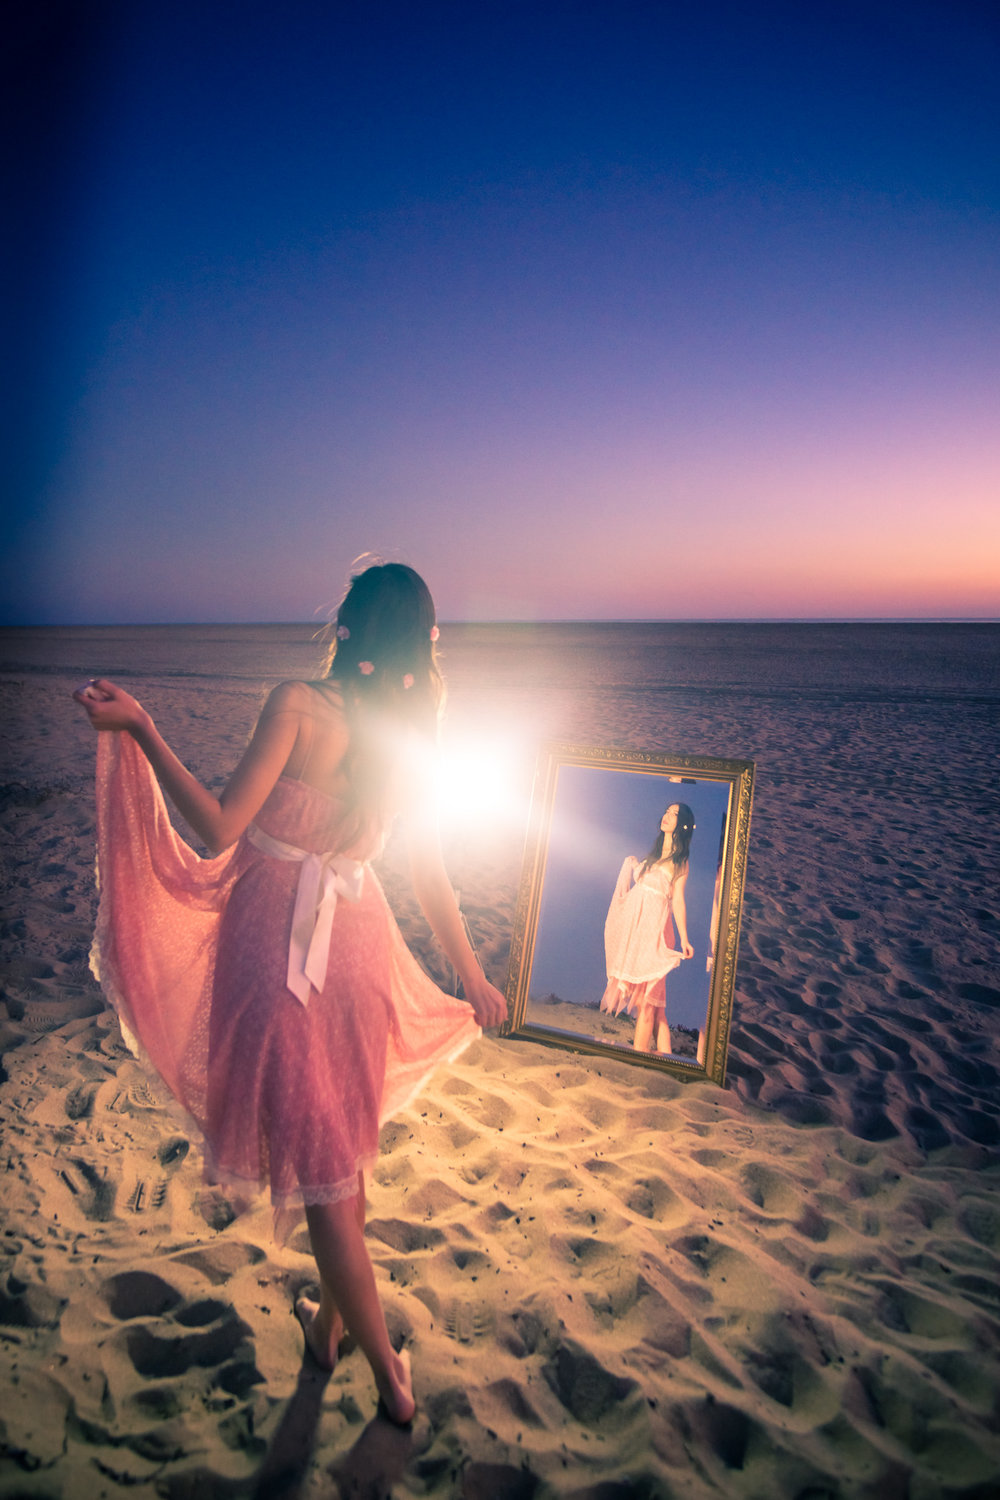 Portrait of a Lady in mirror wearing a pink dress at sunset  on Balboa Island in Newport Beach California By Joseph Barber photography